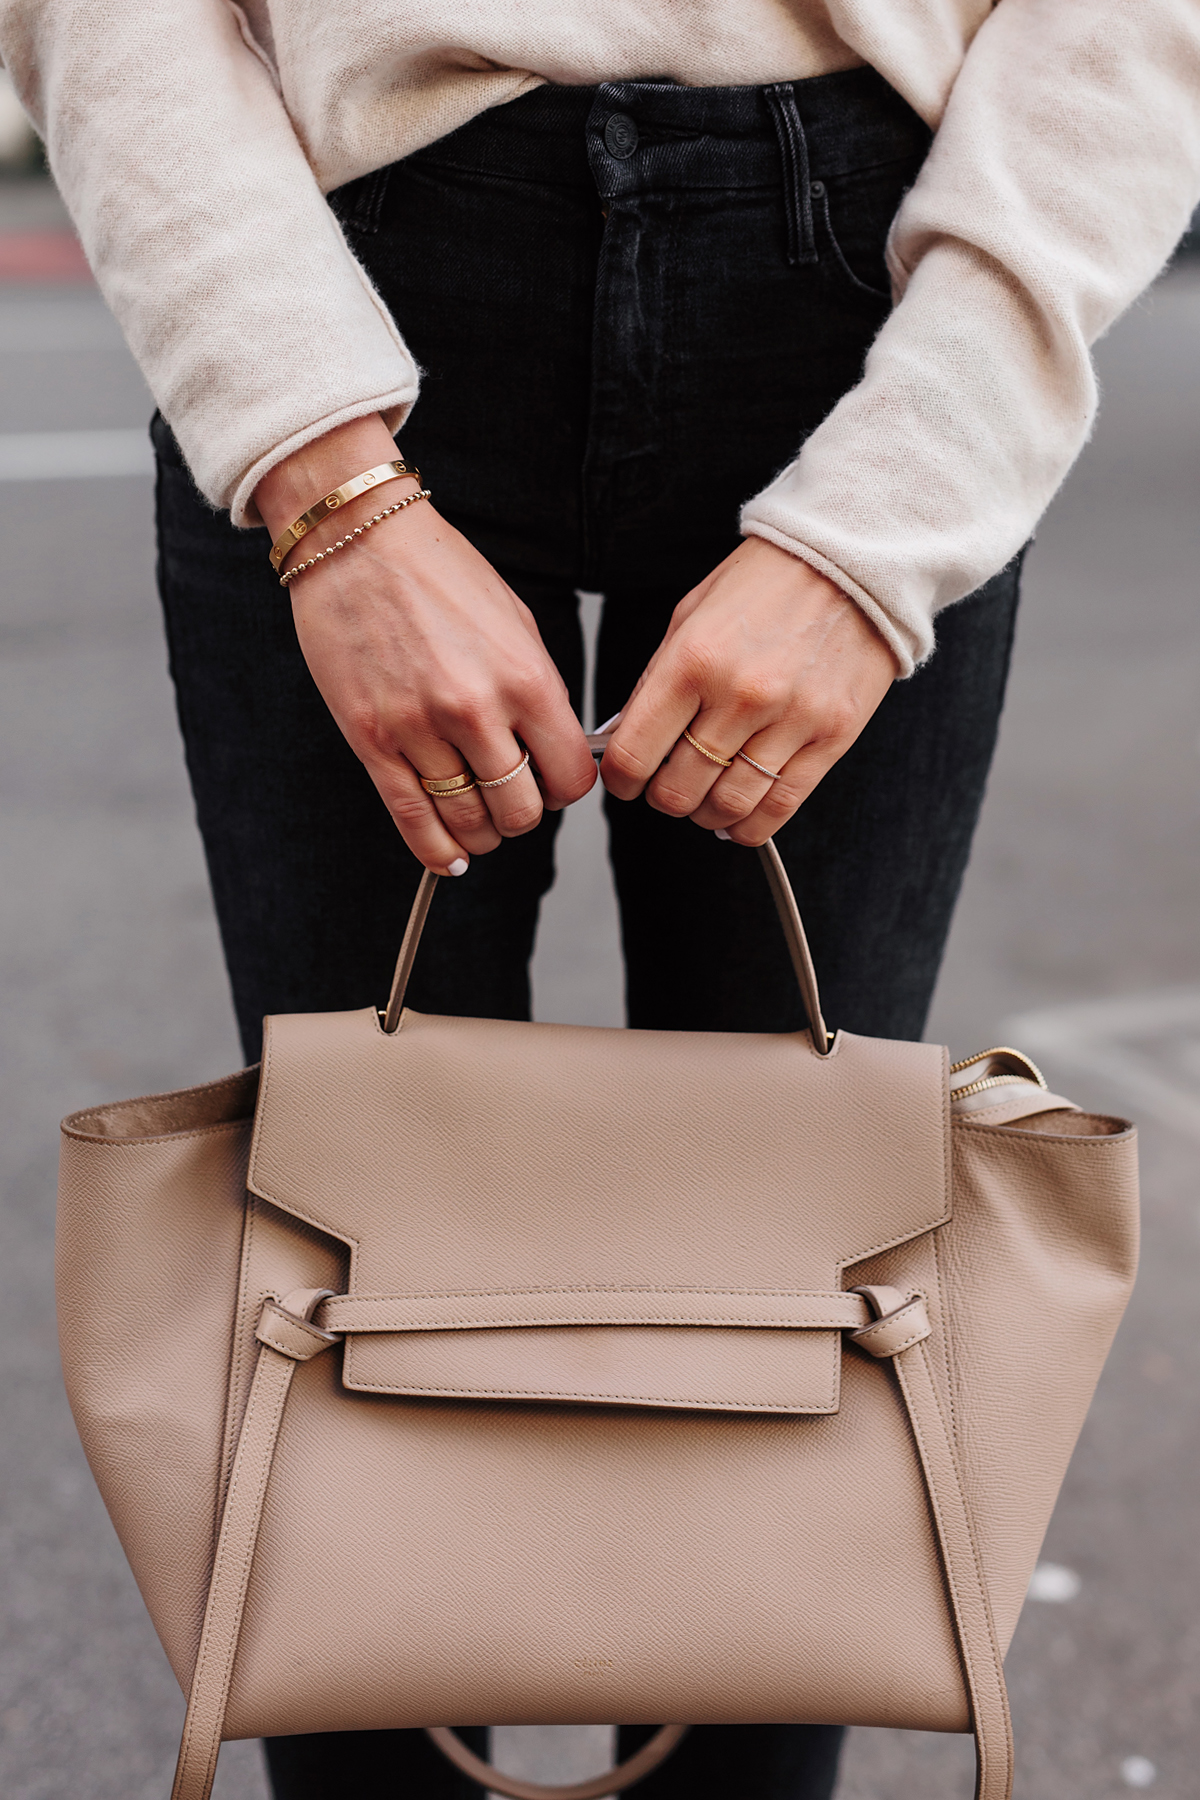 Celine Mini Belt Bag Taupe Dainty Gold Jewelry Fashion Jackson San Diego Fashion Blogger Street Style